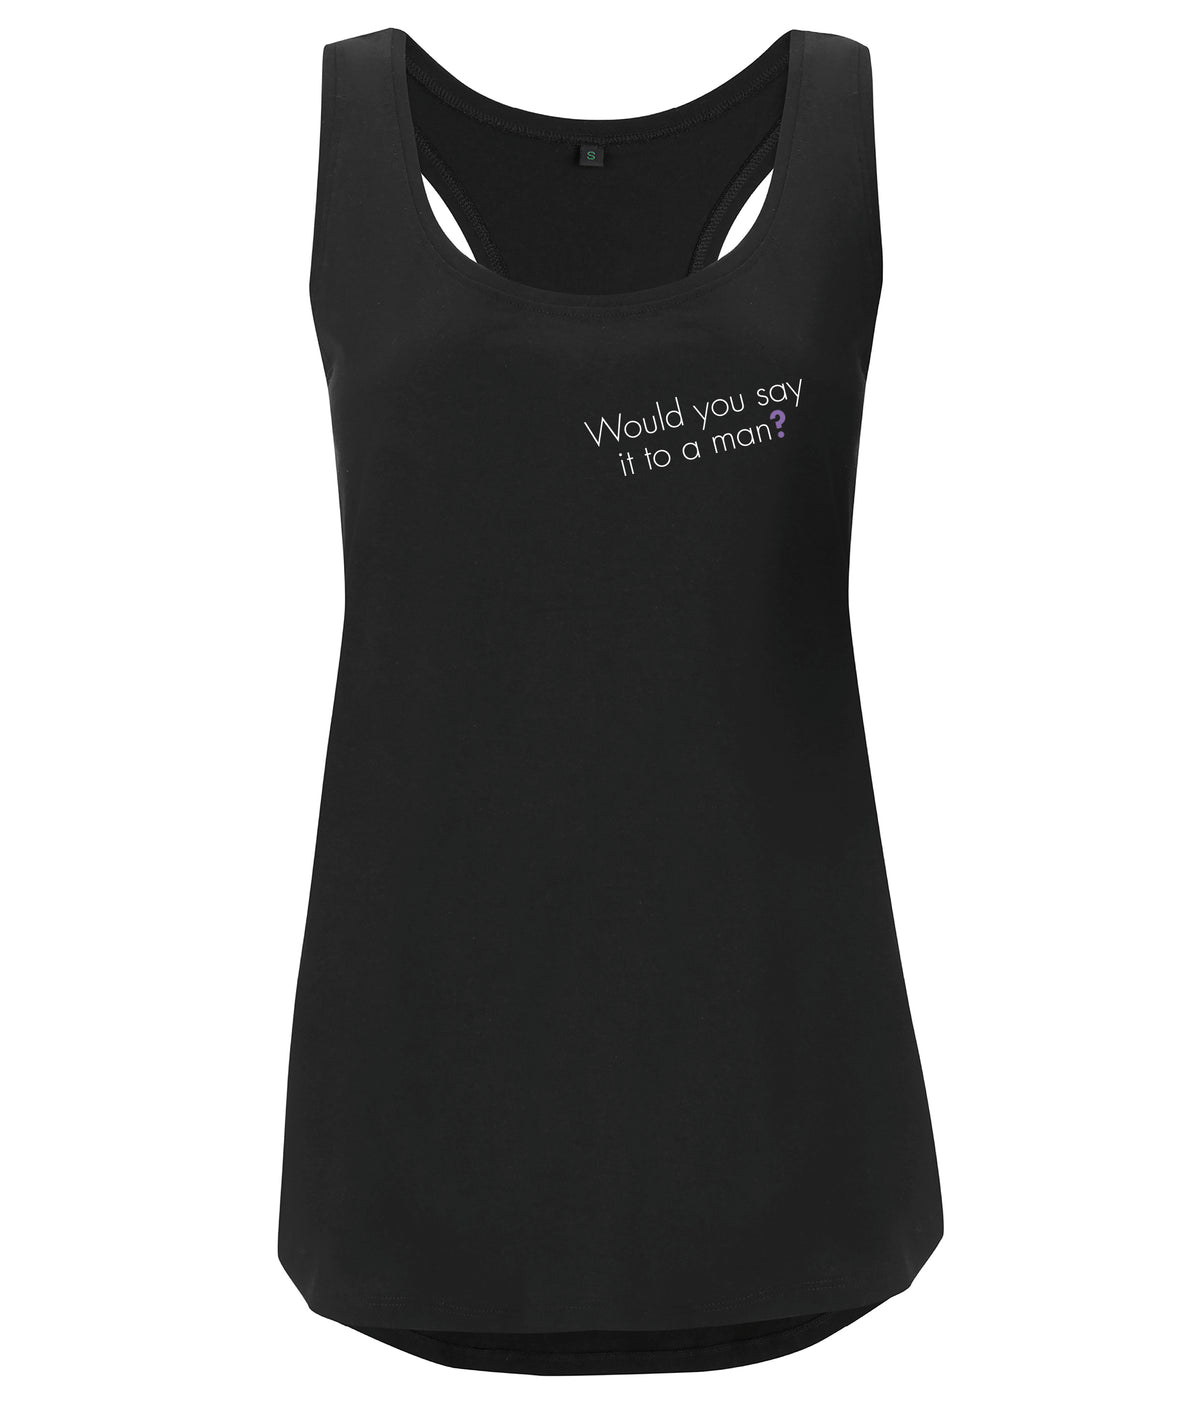 Would You Say It To A Man Organic Feminist Racerback Vest Black